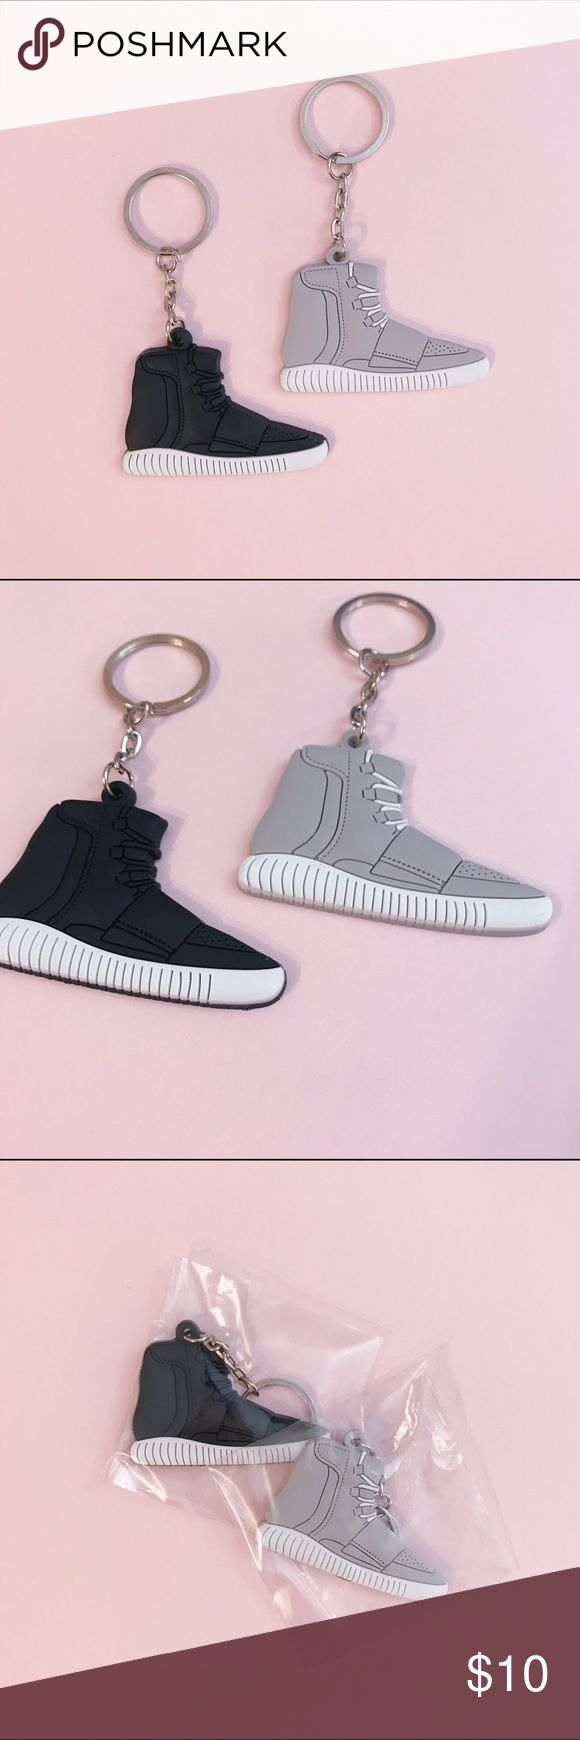 Adidas Yeezy boost 750 keychain Adidas original Yeezy boost 750 keychain 👟 1 for $10 , bundle for a cheaper price! ✨ only one of each color available!!  All brand NEW in package | never used | material: silicone | choose the sneaker color option you want through sizing selection | not brand listed | 💗 check out my closet for more sneaker keychain! 👟  Selection:  - GRAY Adidas Yeezy boost 750 keychain  - BLACK Adidas Yeezy boost 750 keychain Adidas Accessories Key & Card Holders